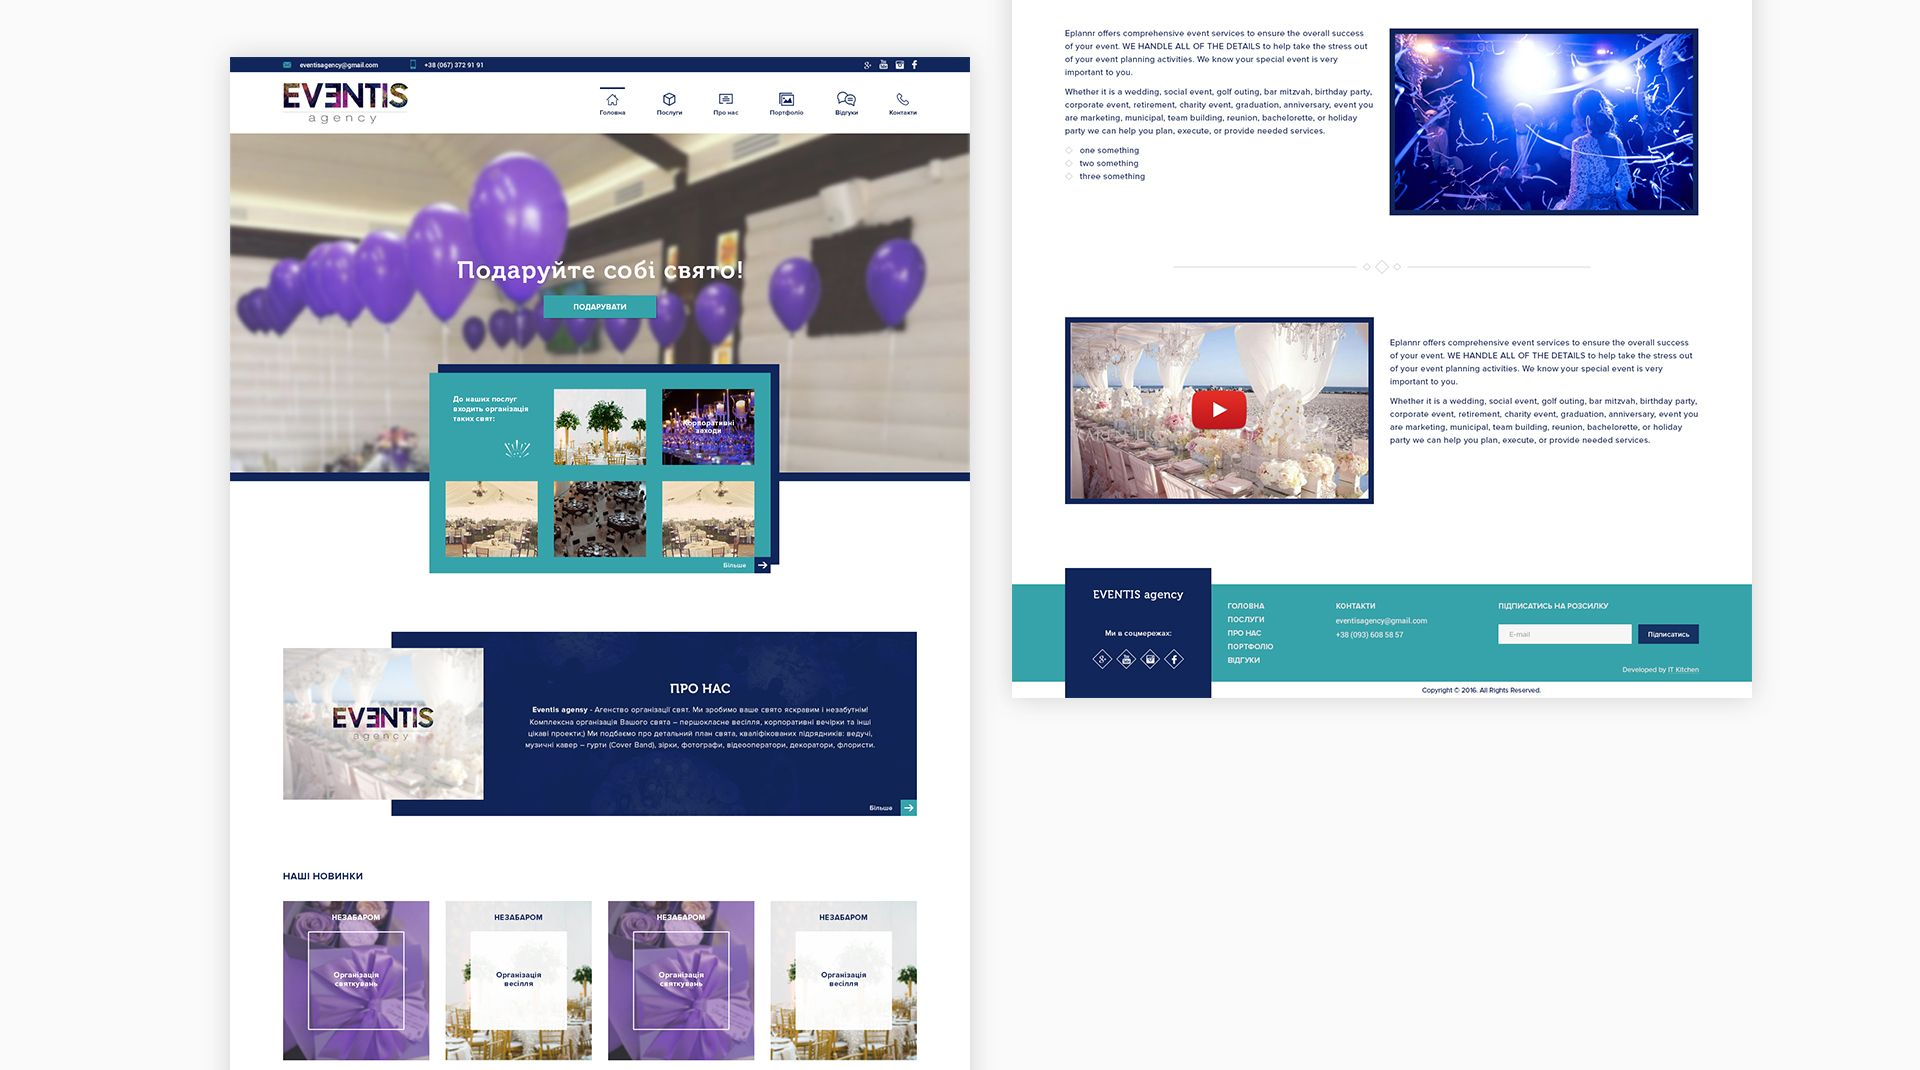 event1 compressor.jpg.pagespeed.ce .kcaapdkep1 - Eventis Agency